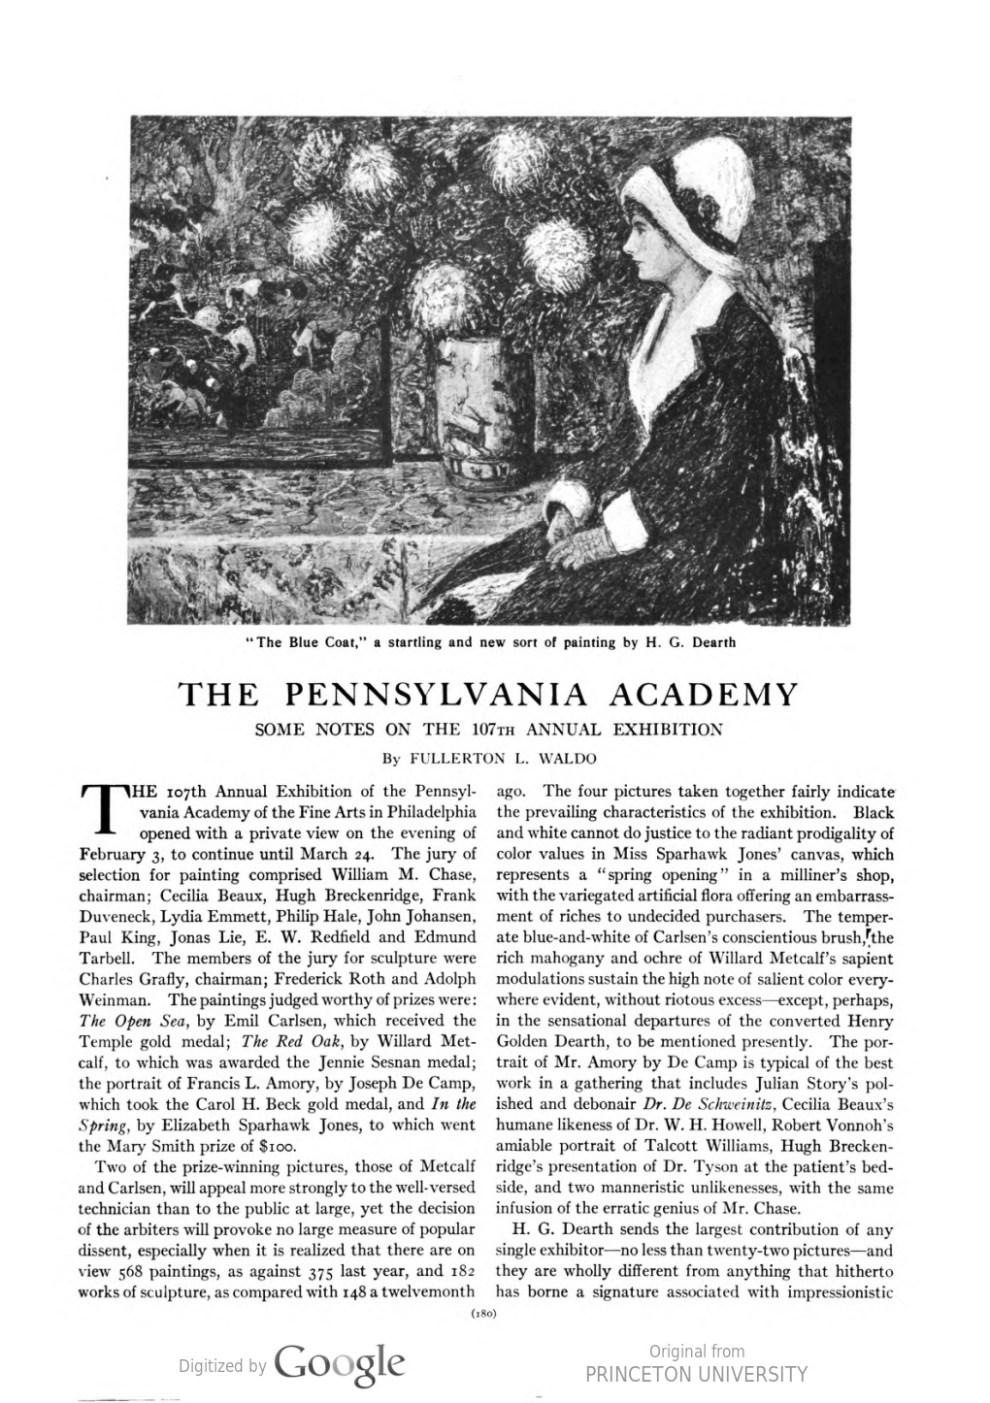 "Arts & Decoration, New York, NY, ""The Pennsylvania Academy: Some Notes on the 107th Annual Exhibition"" by Fullerton L Waldo, Volume 2, Number 5, March, 1912, page 180, not illustrated"